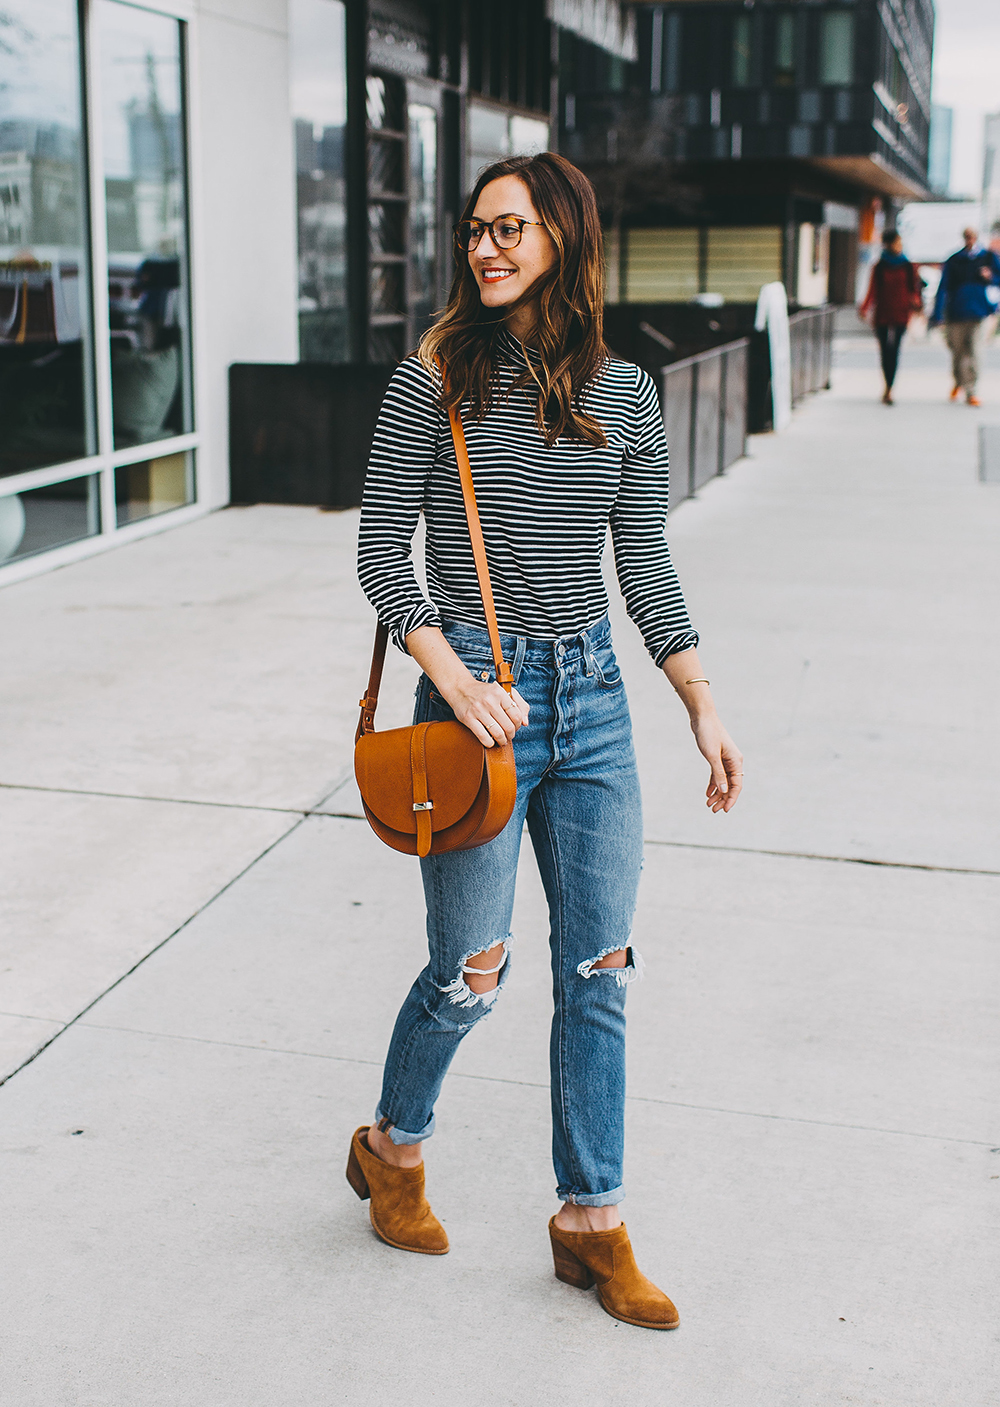 livvyland-blog-olivia-watson-austin-texas-fashion-blogger-j-crew-striped-turtleneck-outfit-idea-inspiration-2